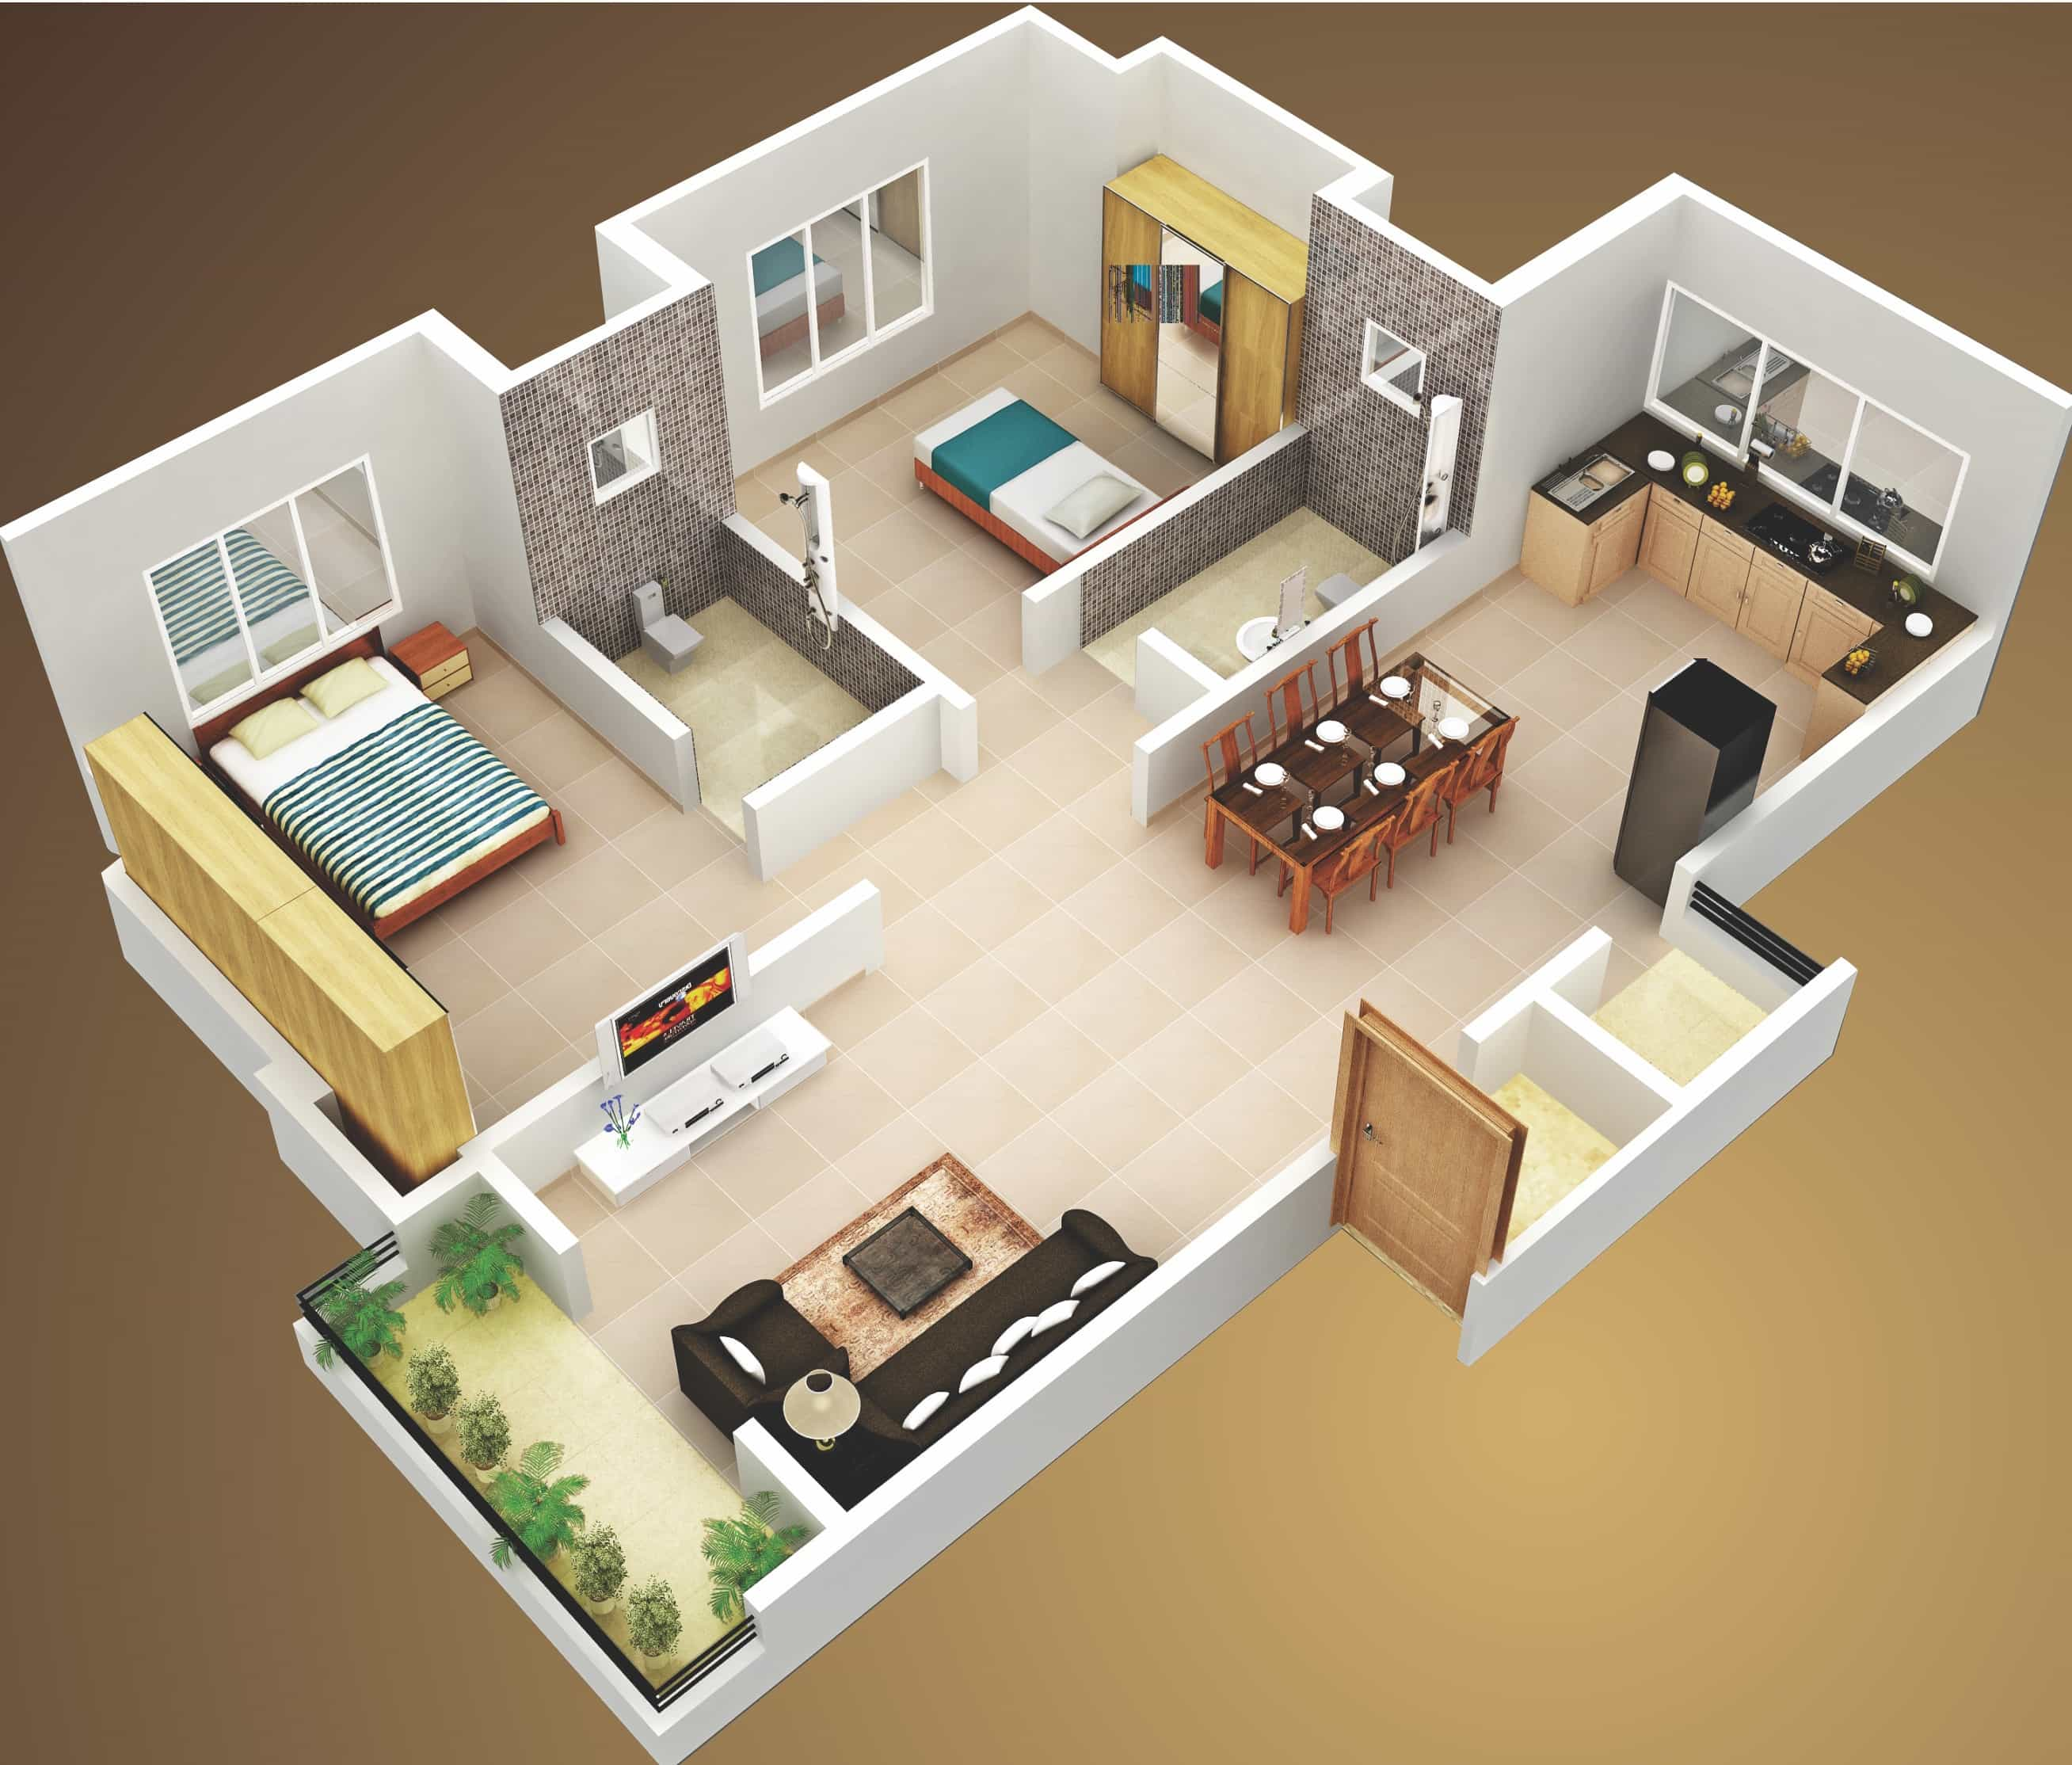 2 bedroom with single bathroom simple house plans 3d layout image 4 of 17